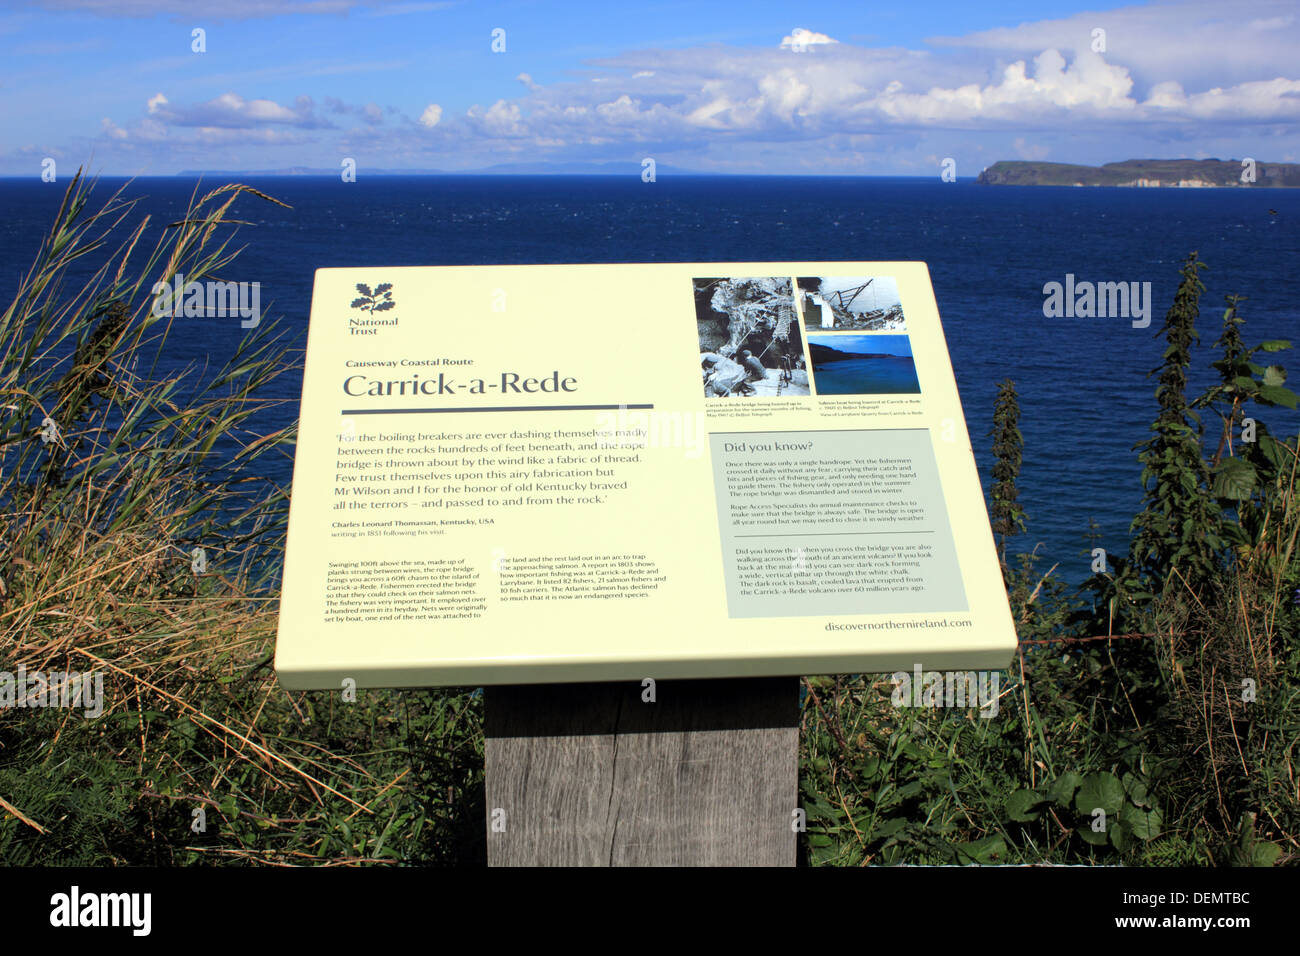 Carrick-a-Rede, rope bridge sign on the Causeway Coastal Route, Northern Ireland. - Stock Image